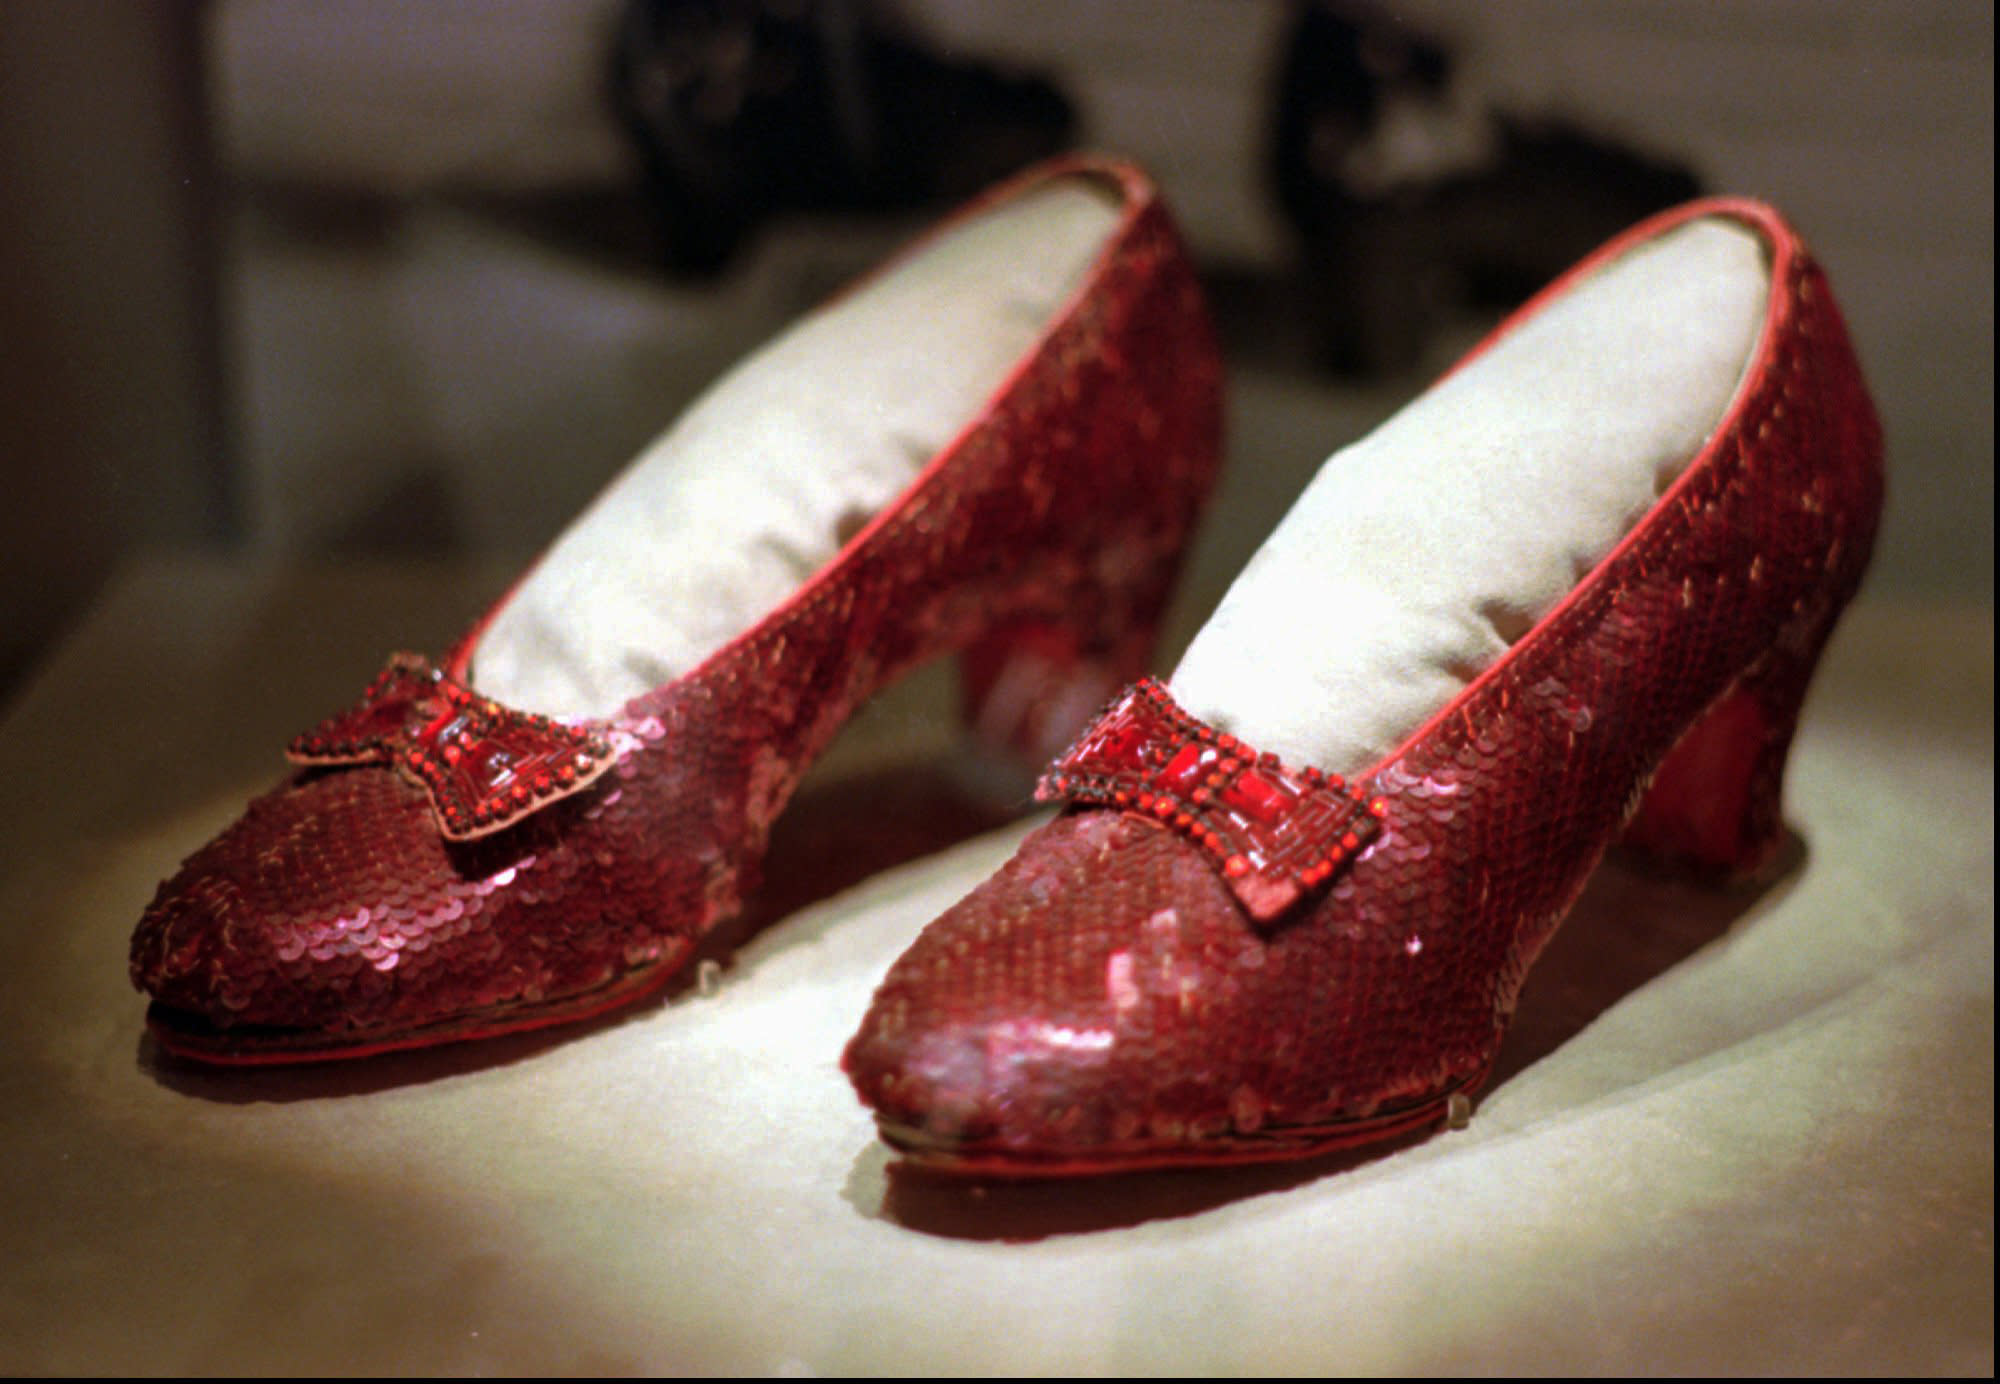 "FILE - This April 10, 1996, file photo shows one of the four pairs of ruby slippers worn by Judy Garland in the 1939 film ""The Wizard of Oz"" on display during a media tour of the ""America's Smithsonian"" traveling exhibition in Kansas City, Mo. Federal authorities say they have recovered a pair of ruby slippers worn by Garland that were stolen from the Judy Garland Museum in Grand Rapids, Minn., in August 2005 when someone went through a window and broke into the small display case. The shoes were insured for $1 million. (AP Photo/Ed Zurga, File)"